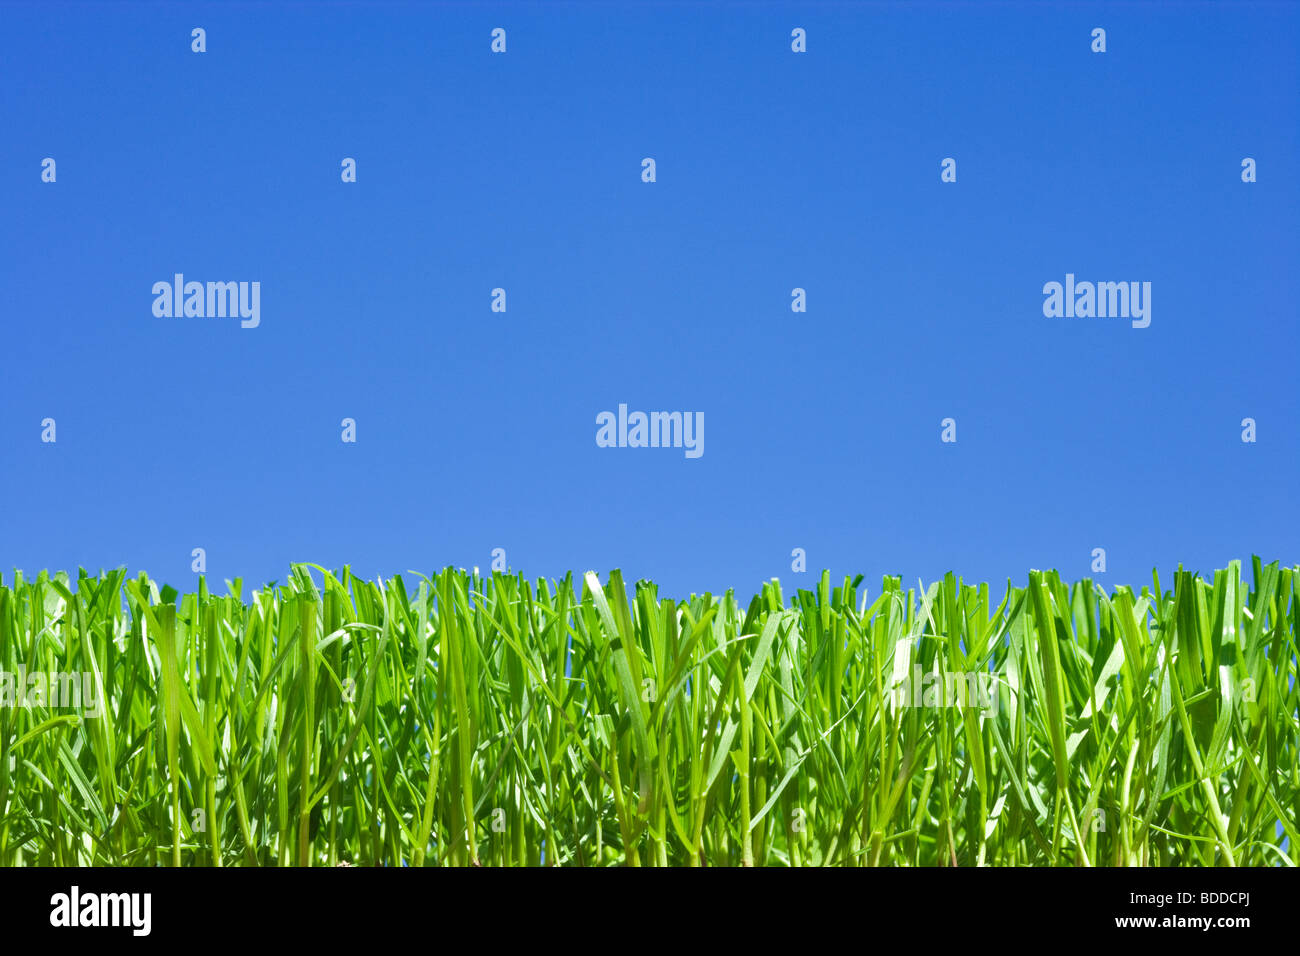 Cut grass, low angle against plain blue sky - Stock Image